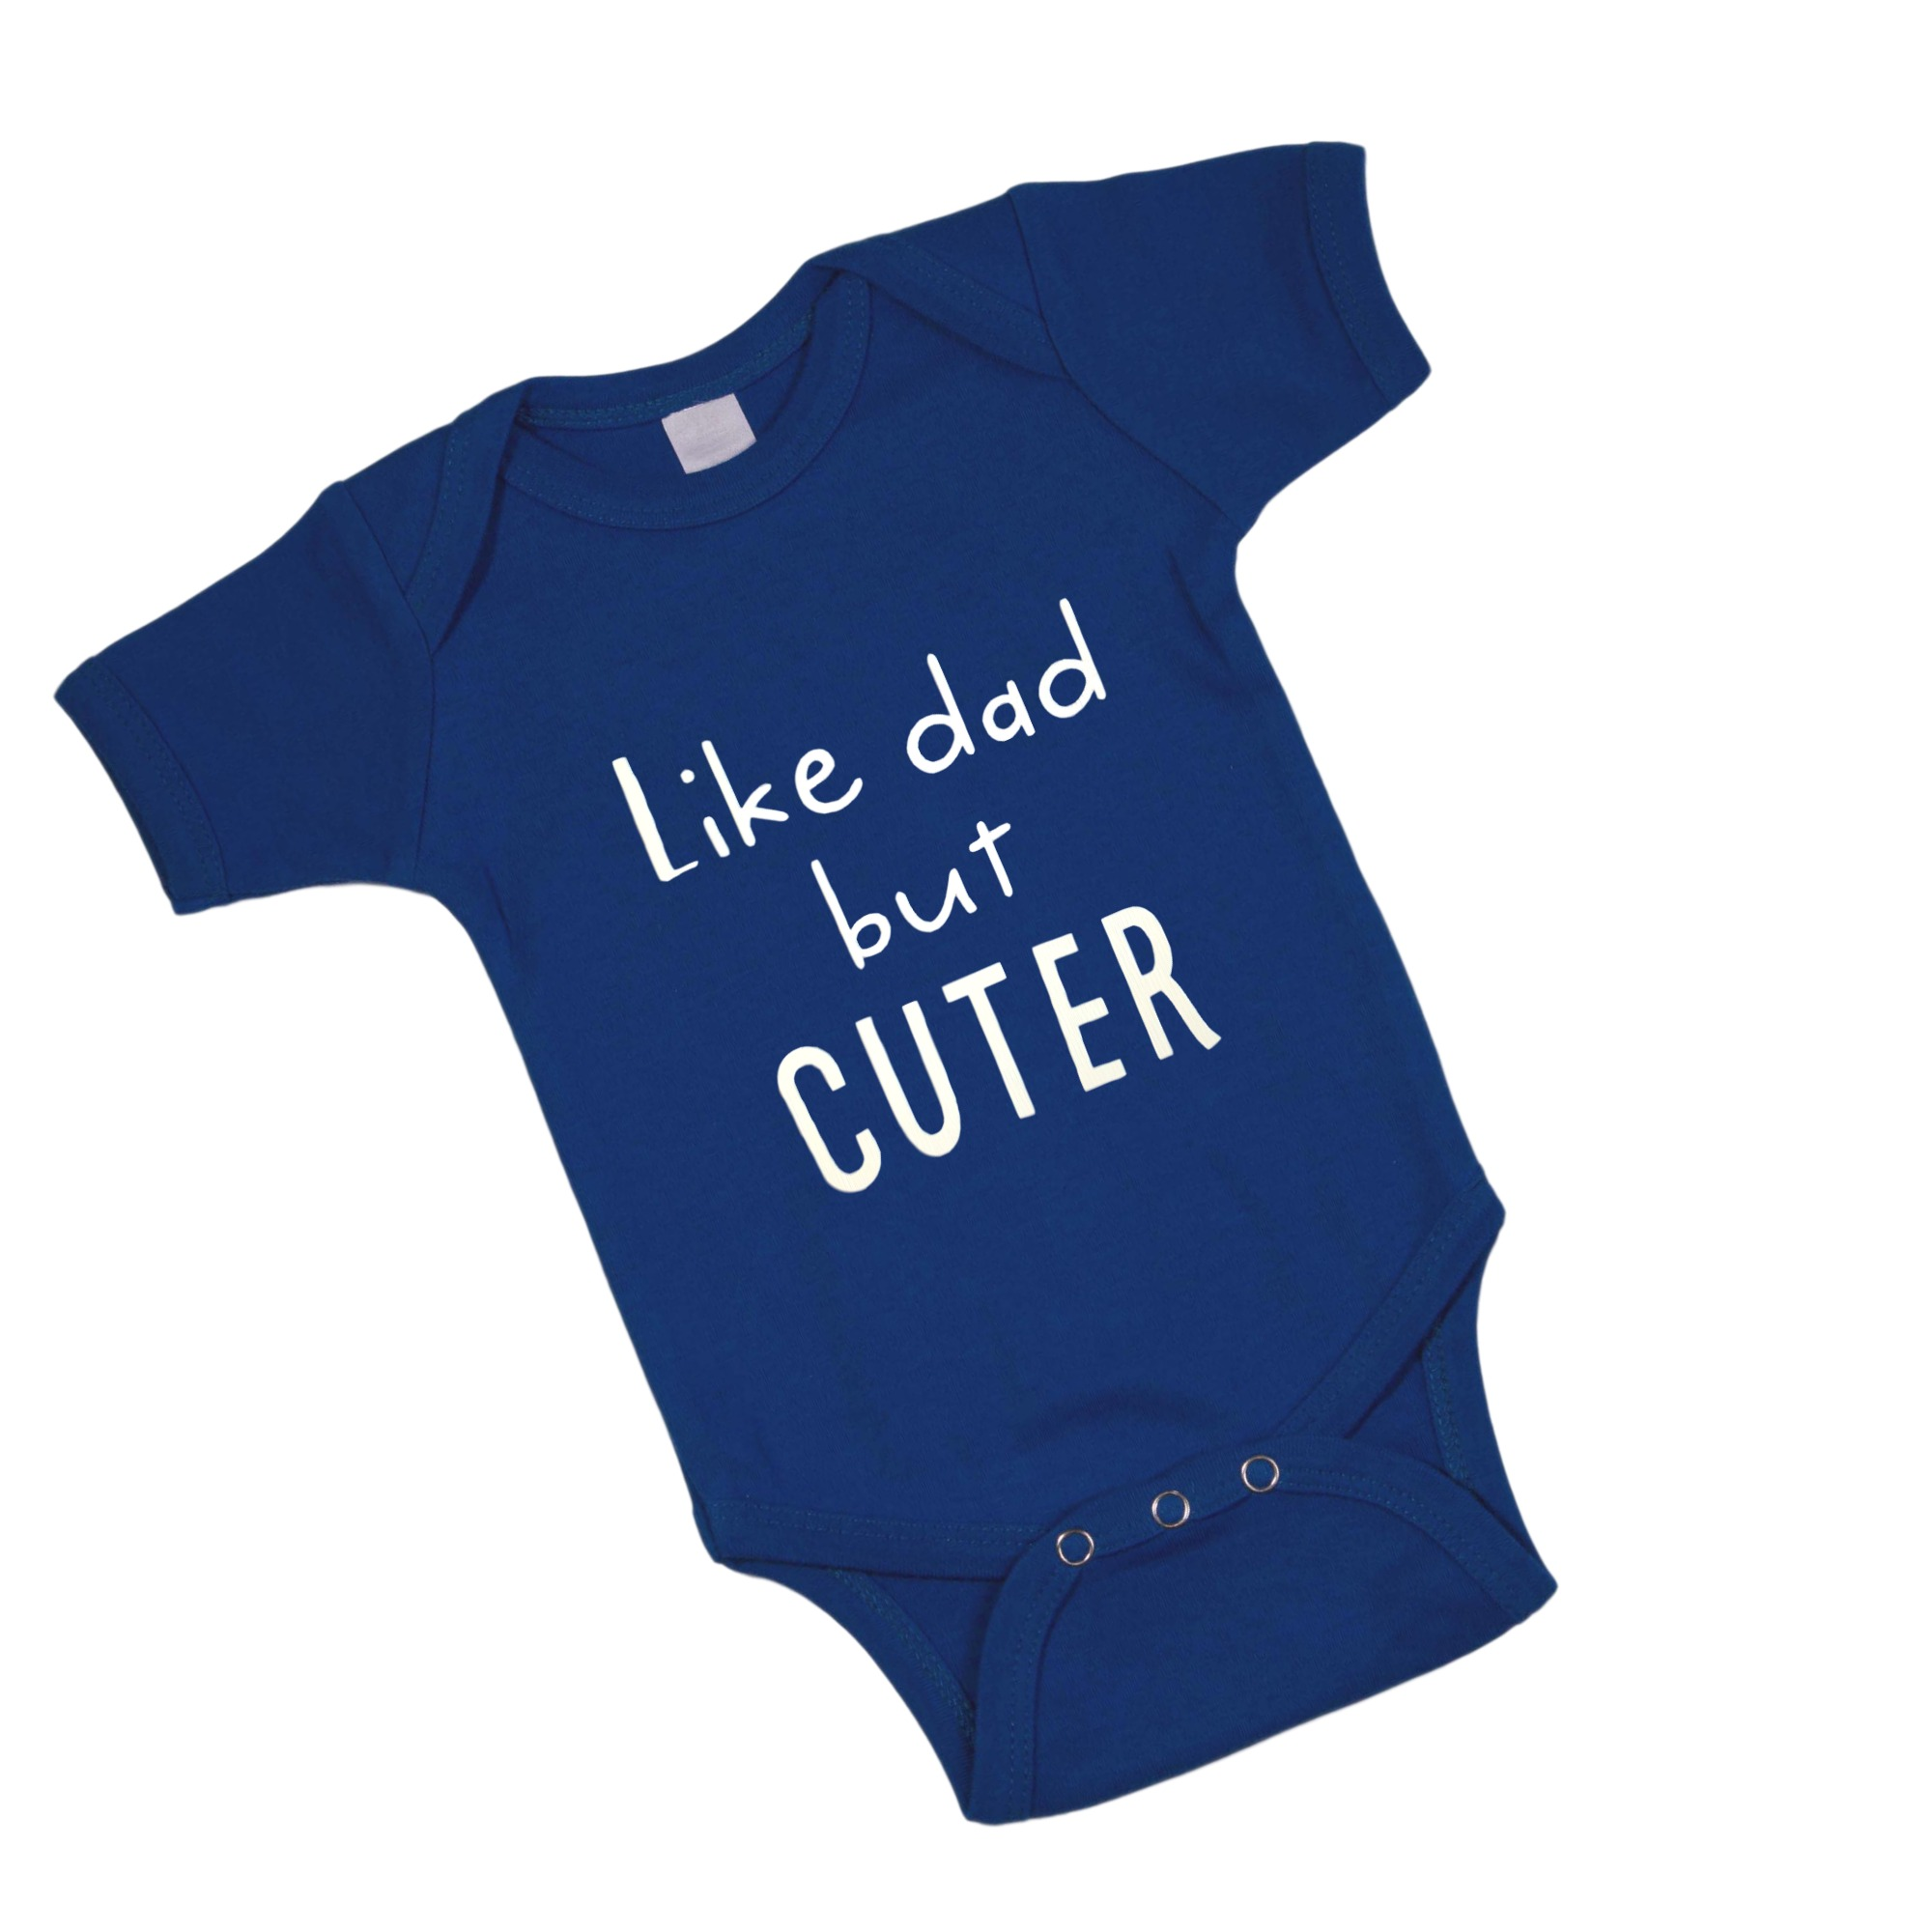 Funny Boy Onesie Onesies For Boys Dad And Baby Shirts Funny Onesies Baby Boy Clothes Boy Onesi Funny Baby Shirts Funny Baby Clothes Baby Boy Clothes Funny